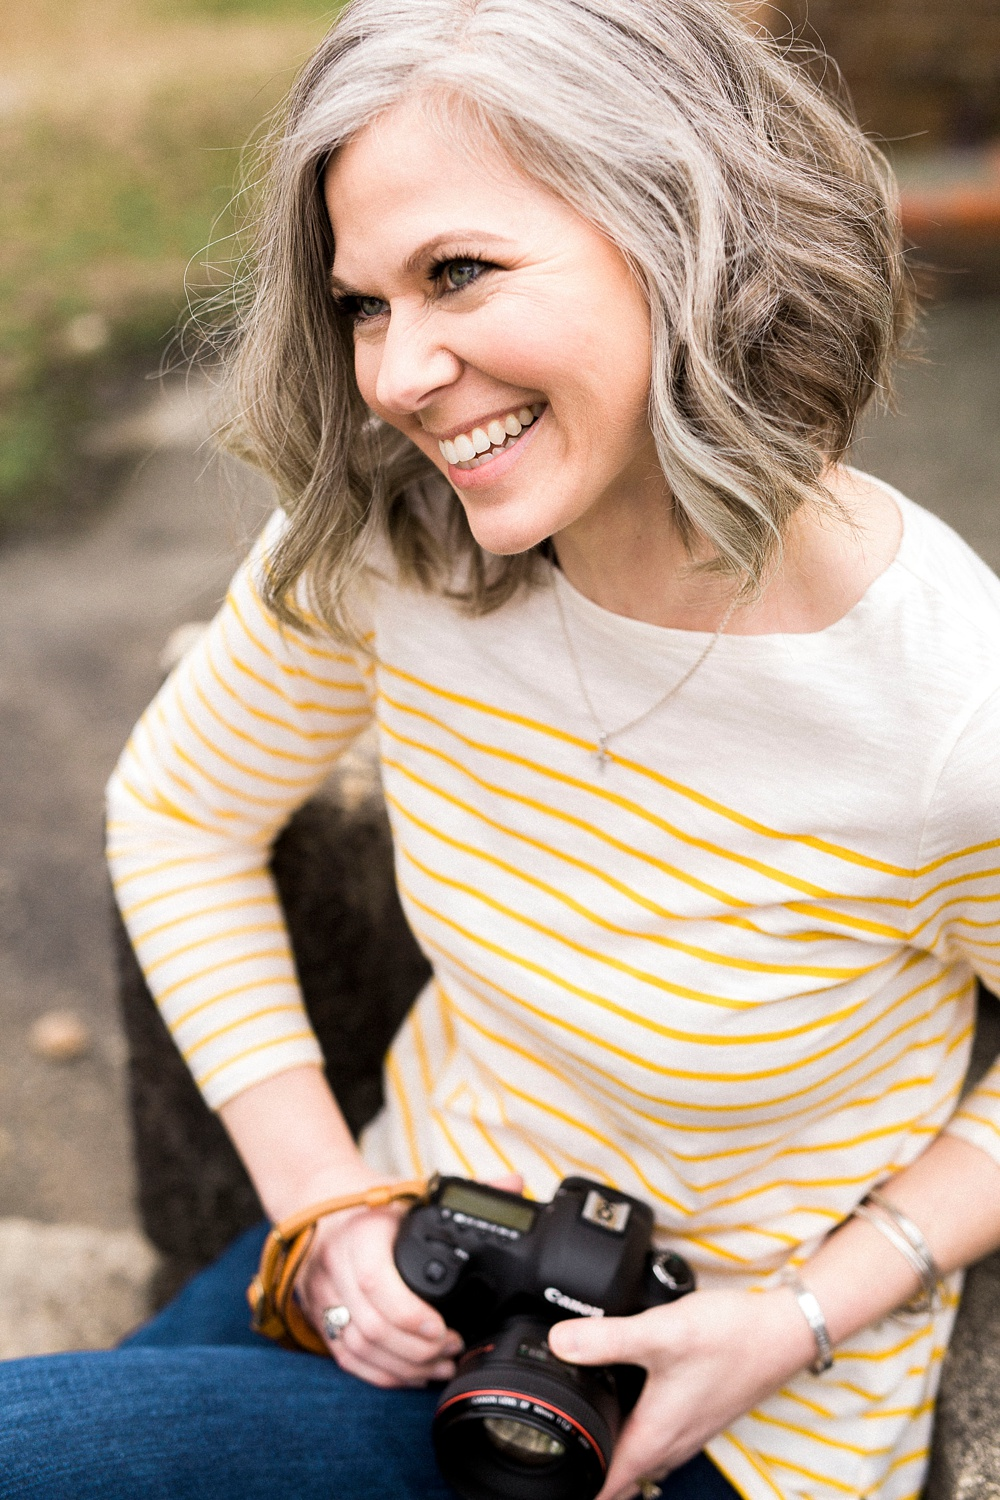 headshot of a female photographer holding her camera and smiling